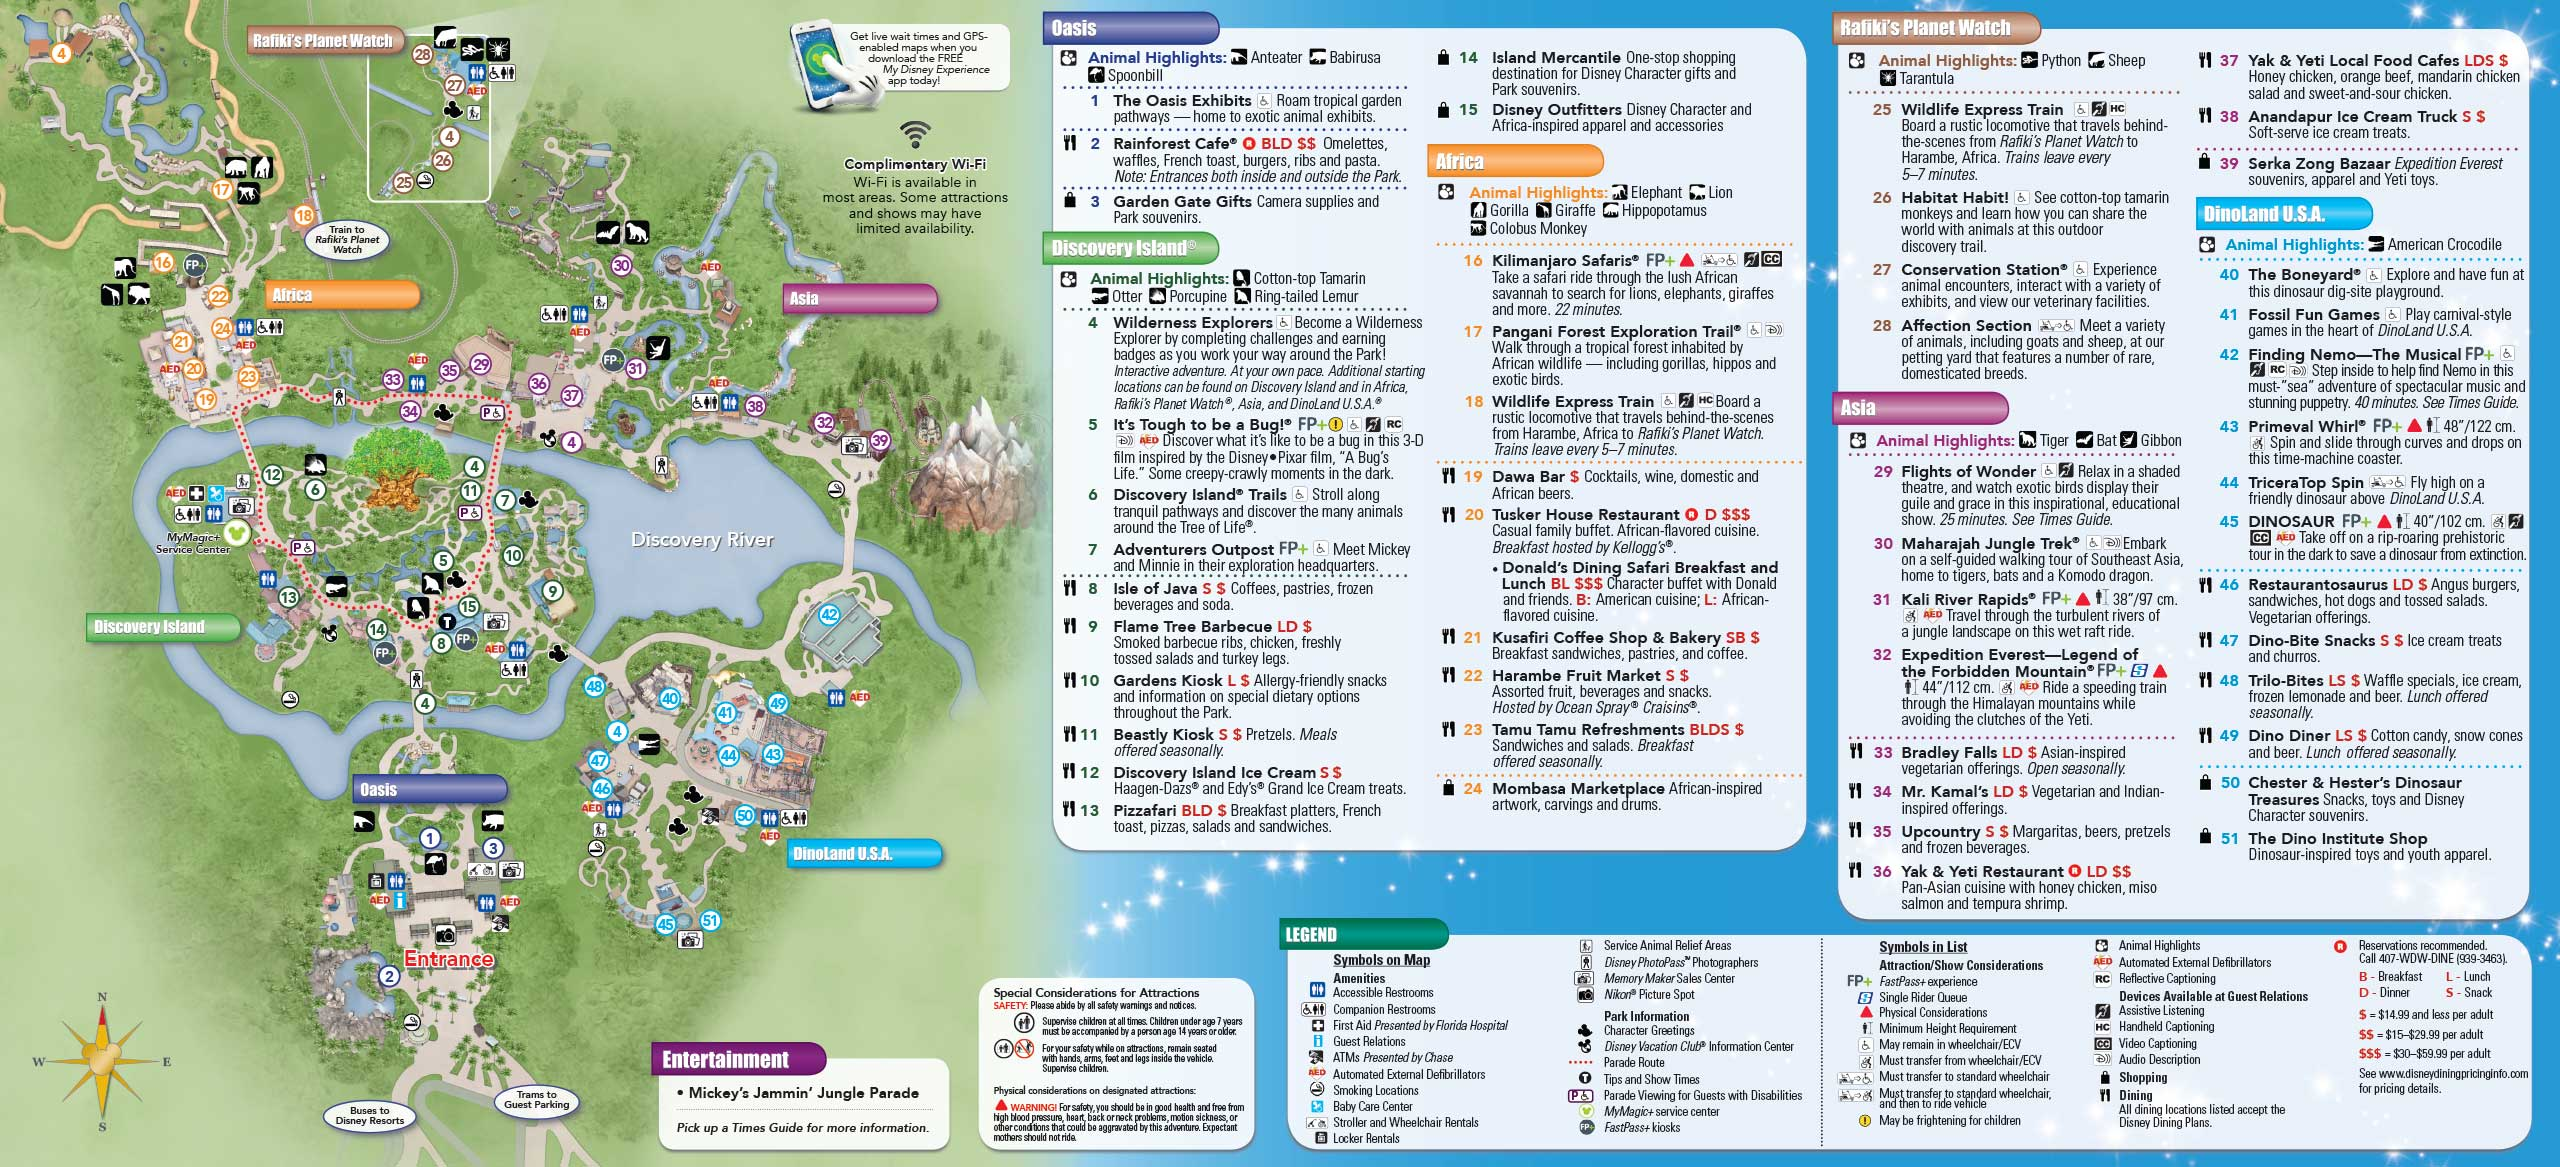 Disney's Animal Kingdom guide map with MyMagic+ and FastPass+ details